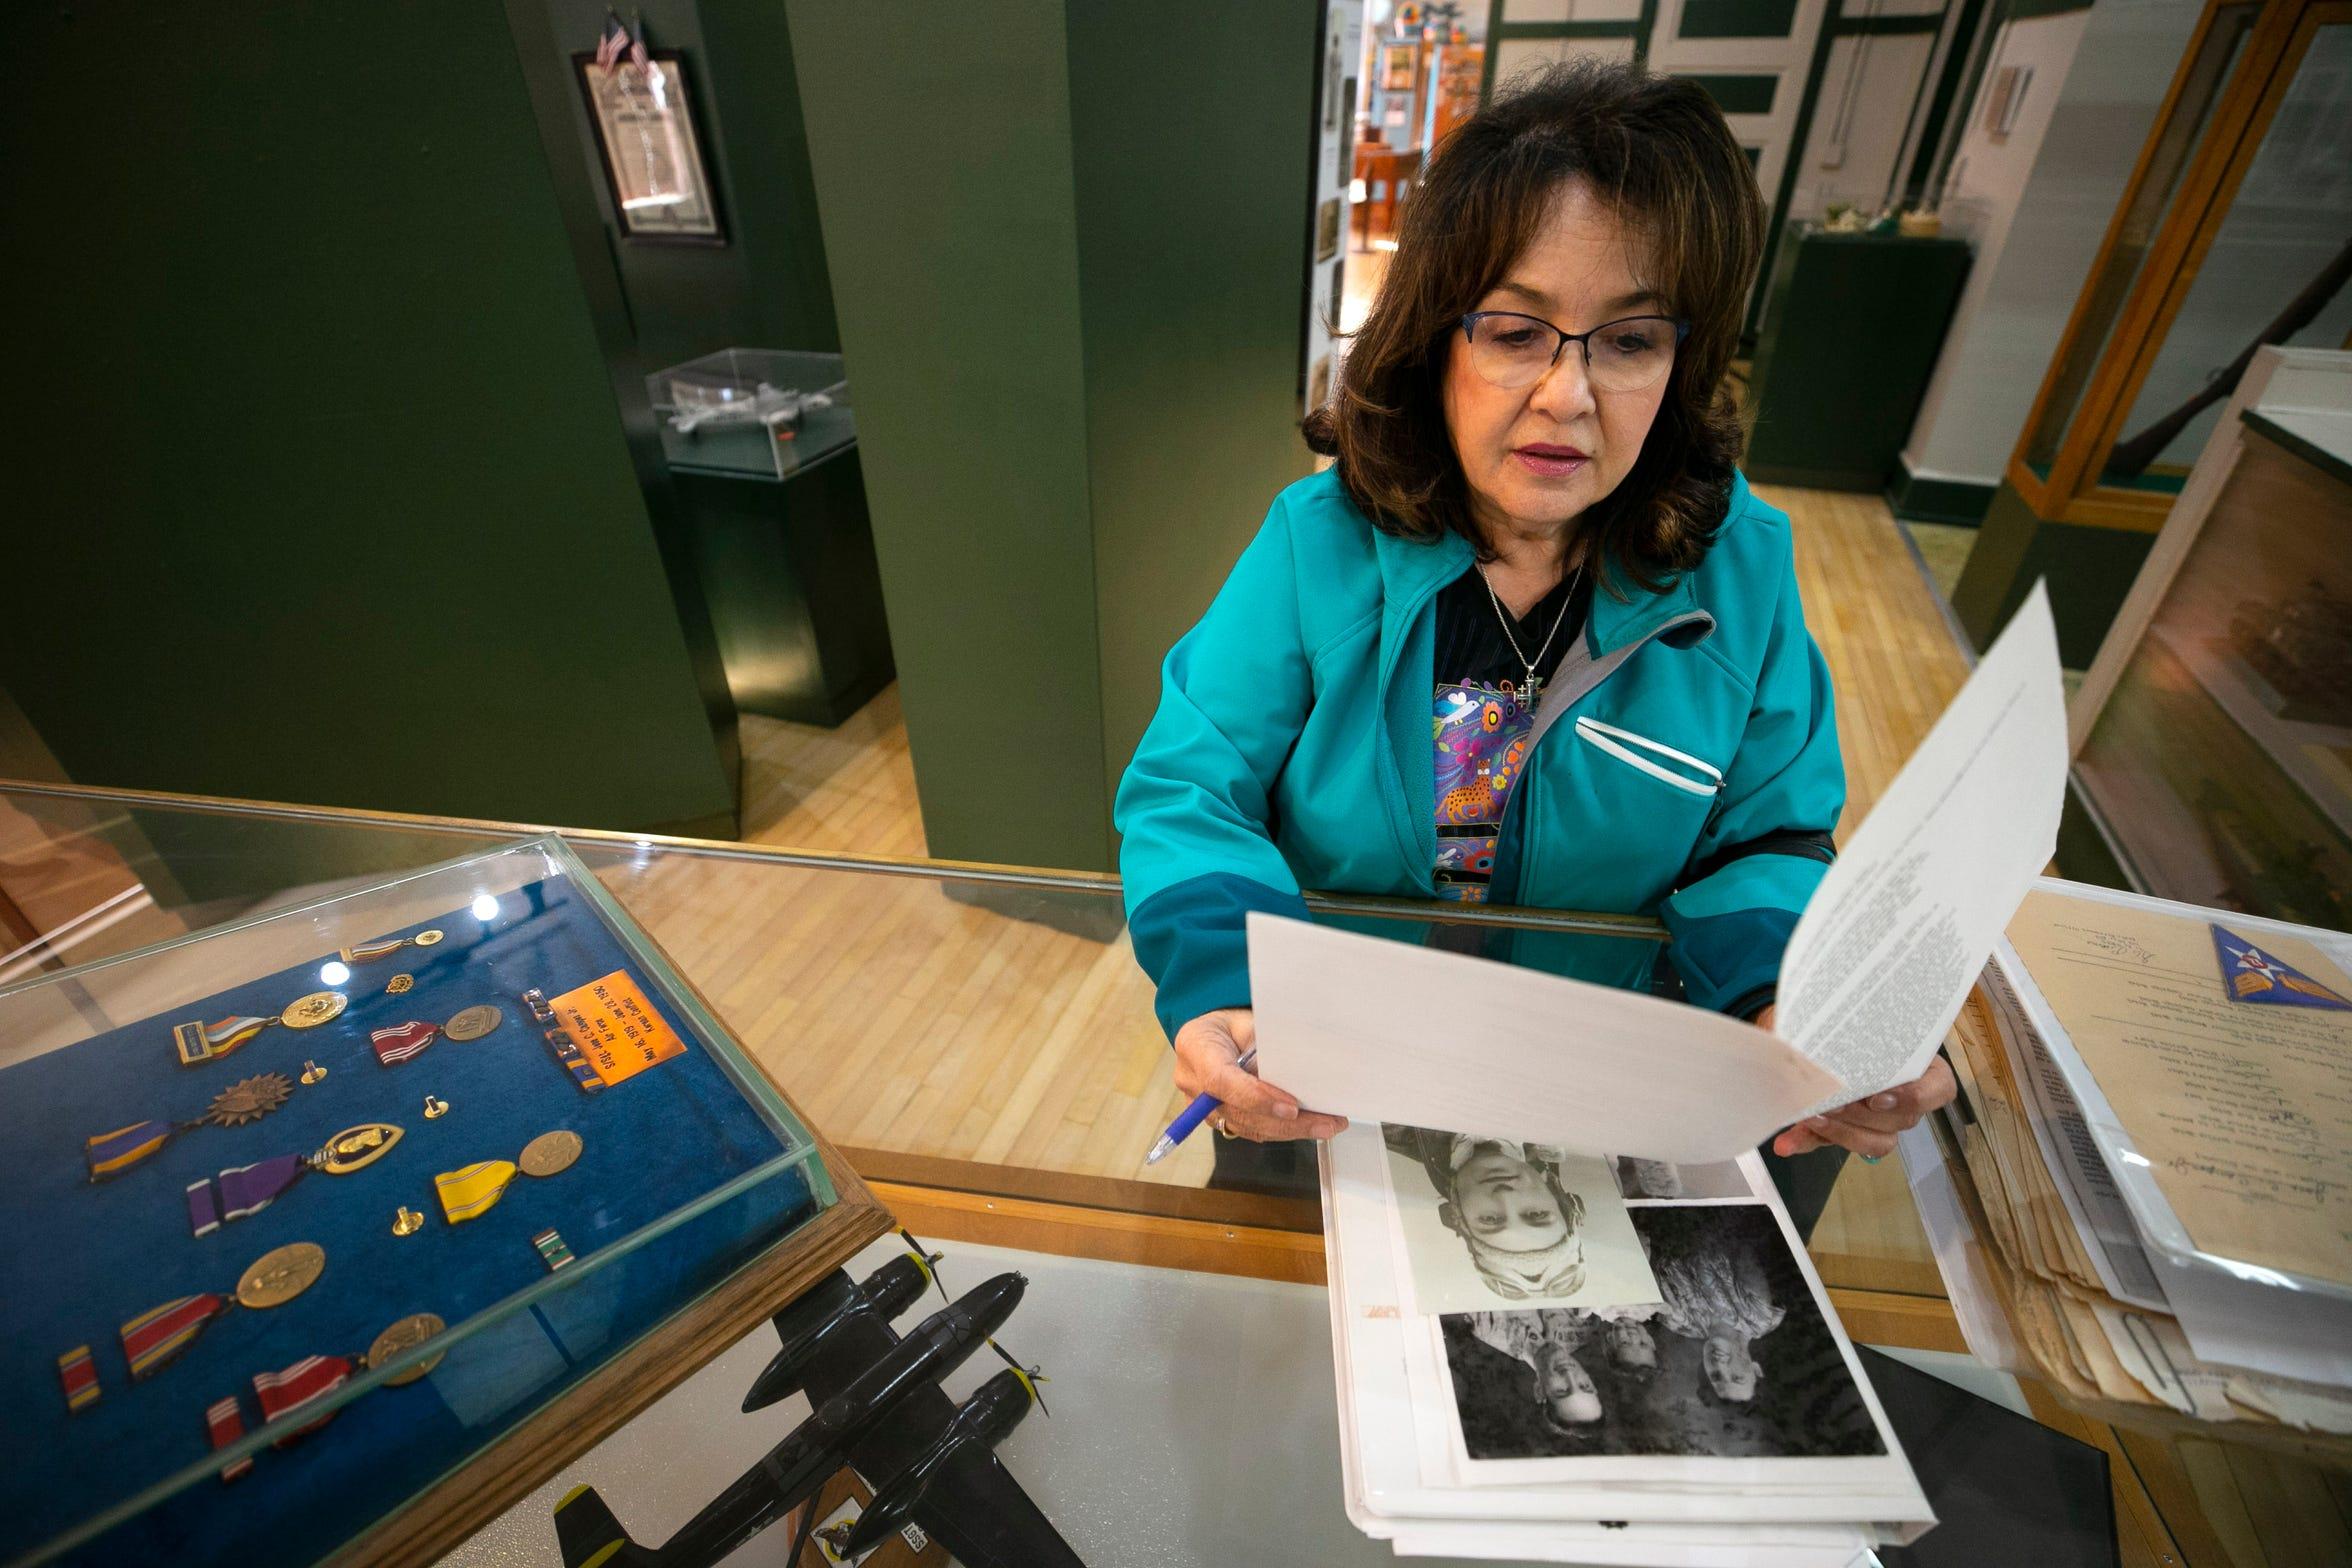 Jennie Campos looks at documents, photos and military medals pertaining to her father, Joe Campos, at the Bullion Plaza Cultural Center & Museum in Miami, Ariz., on January 24, 2019. It is believed that Staff Sgt. Joe Campos, a gunner on a B-26 bomber was likely the first American killed in the Korean War when his plane went down in the Yellow Sea on June 28, 1950. The museum is building a display about Joe Campos in their military exhibit.